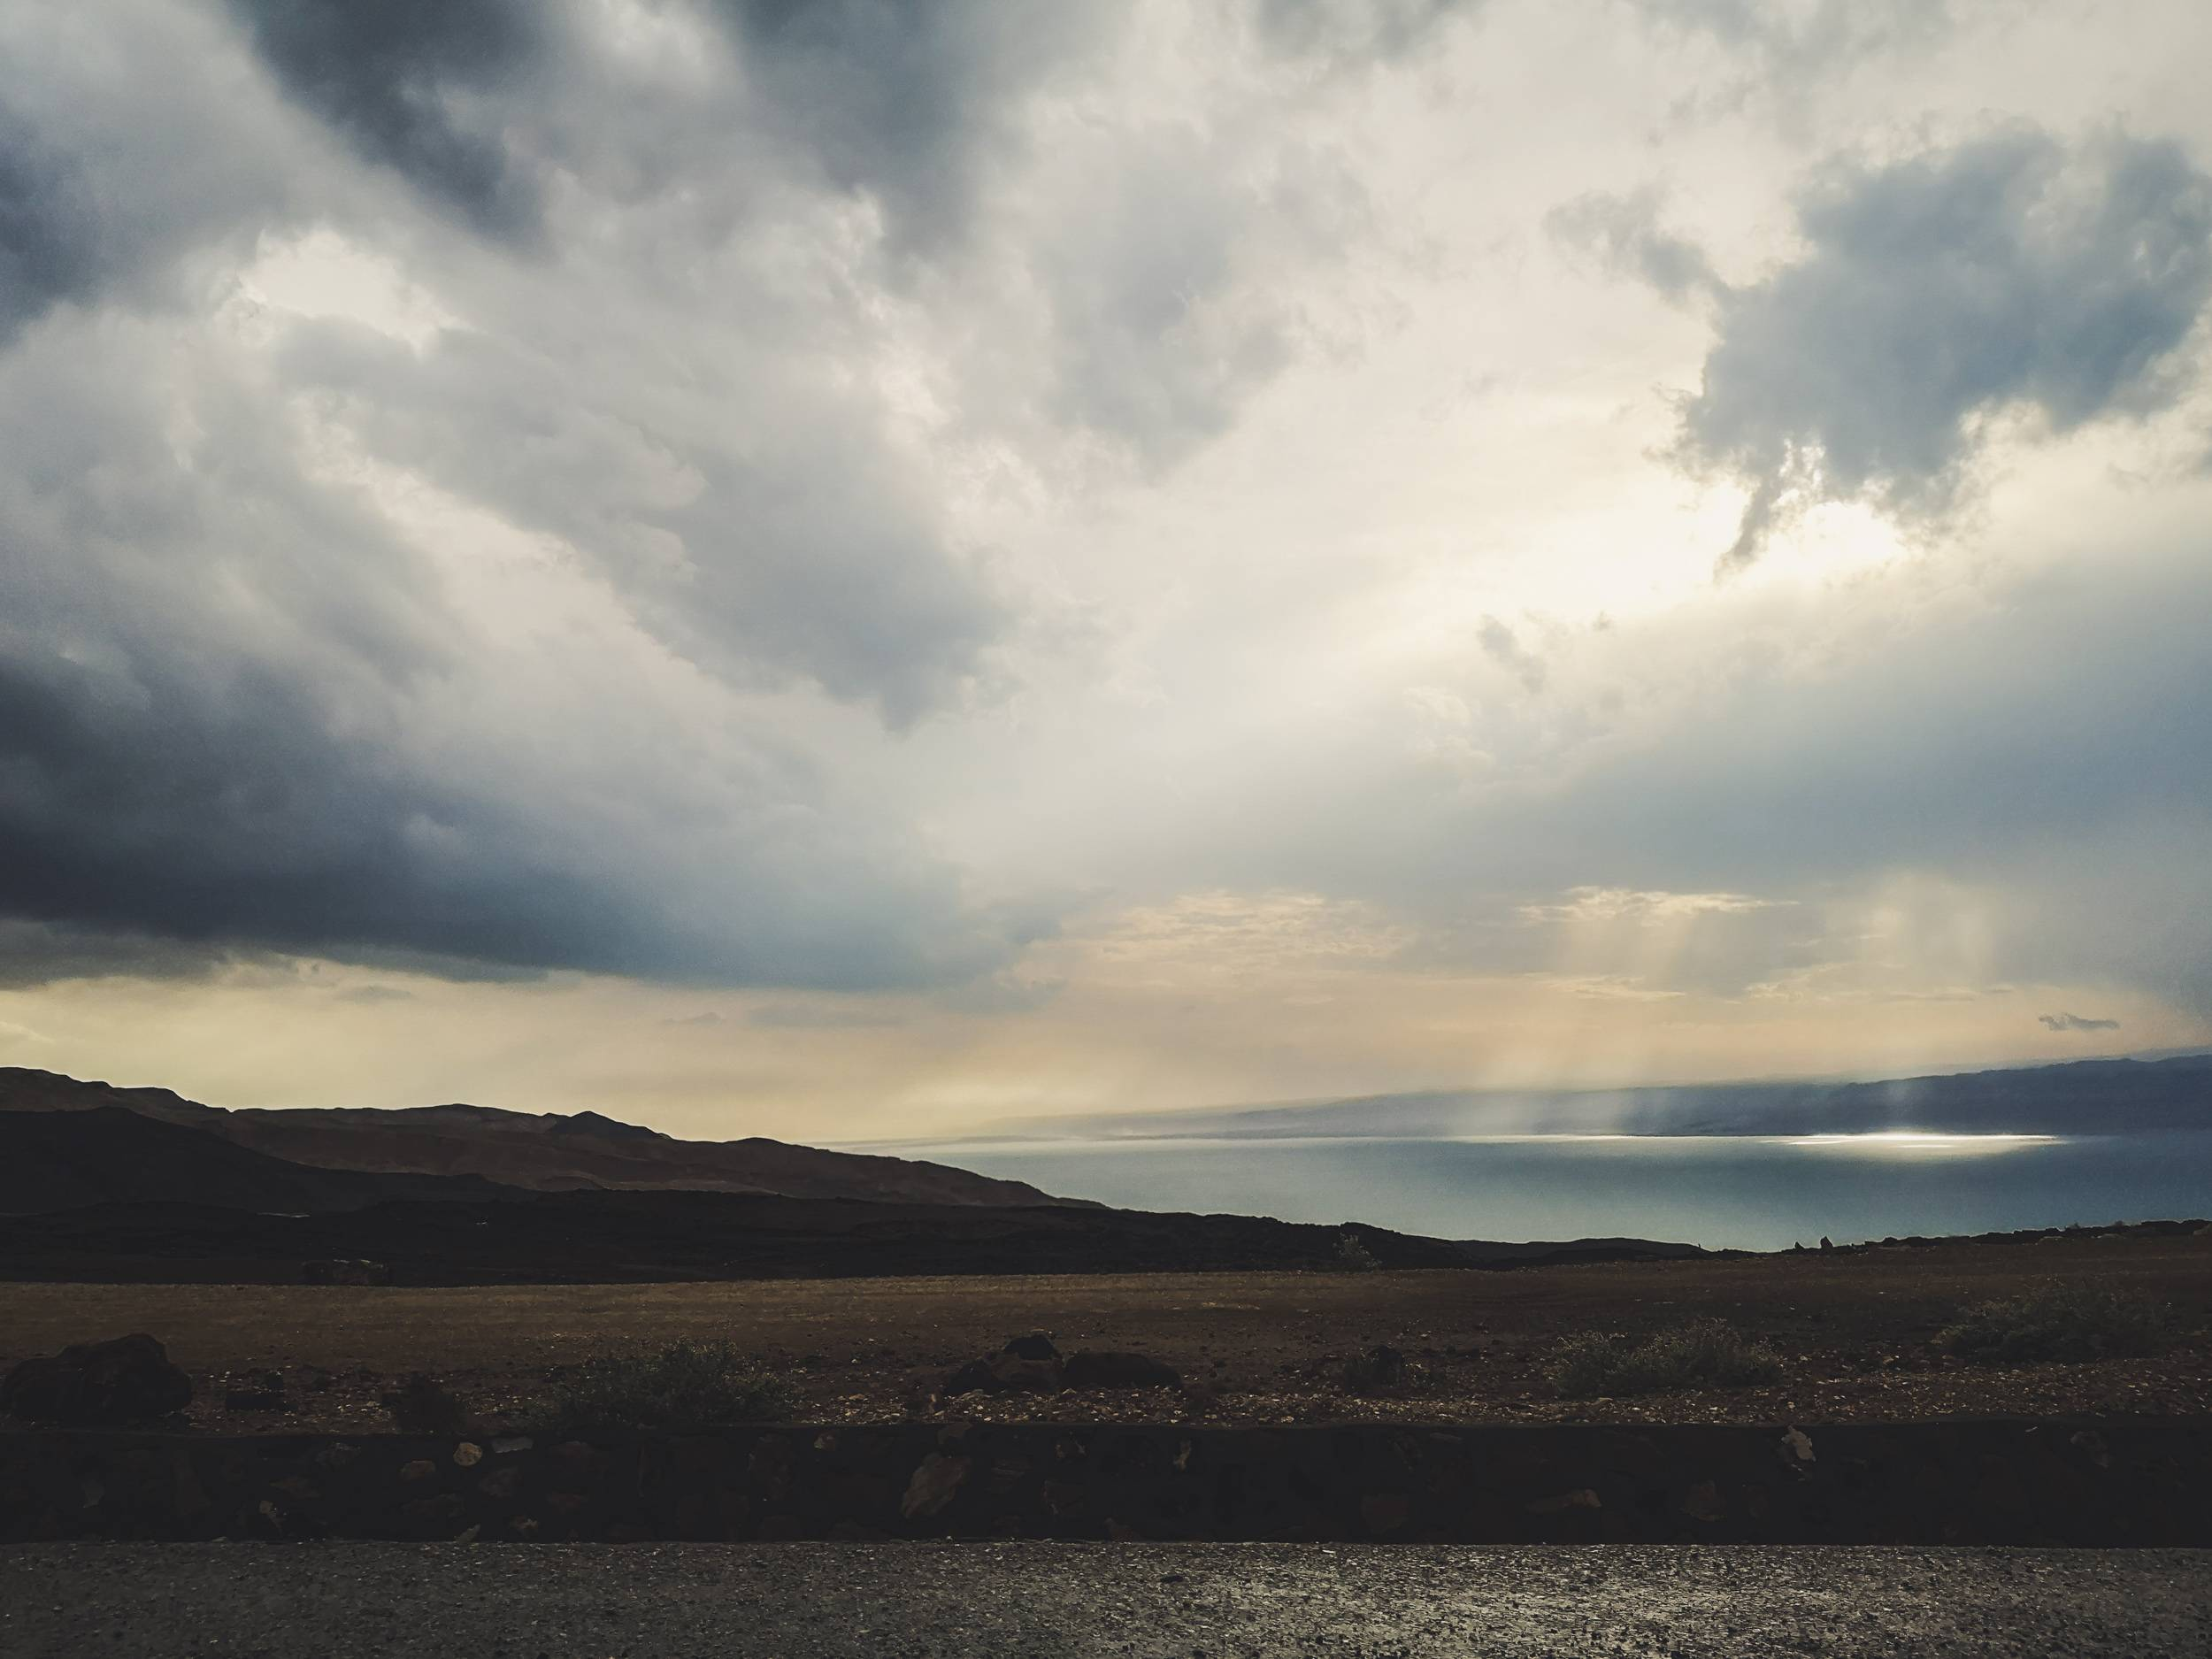 Israelite states were separated from Moab by the Dead Sea, just like Israel is separated from Jordan today. Photo by Alis Monte [CC BY-SA 4.0], via Connecting the Dots